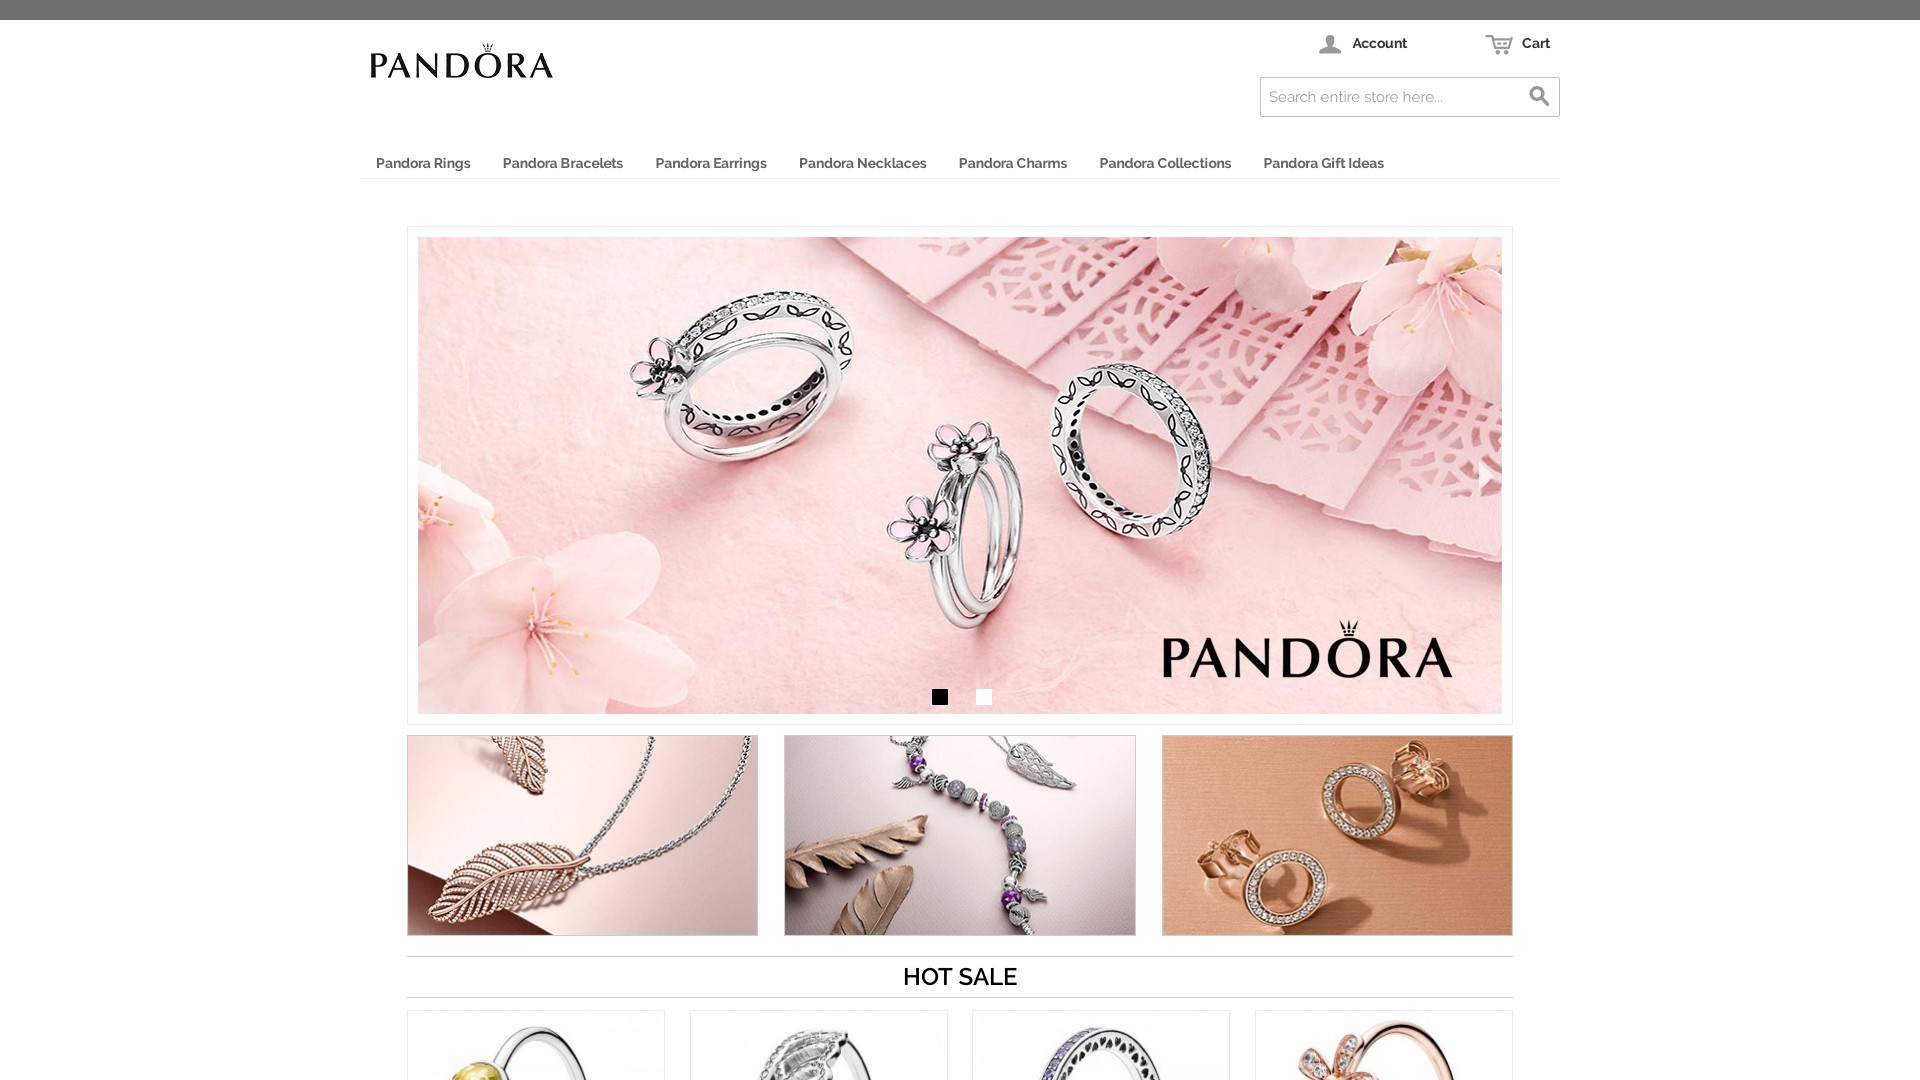 Is Store Pandora Jewelry a Fake Jewelry Store?